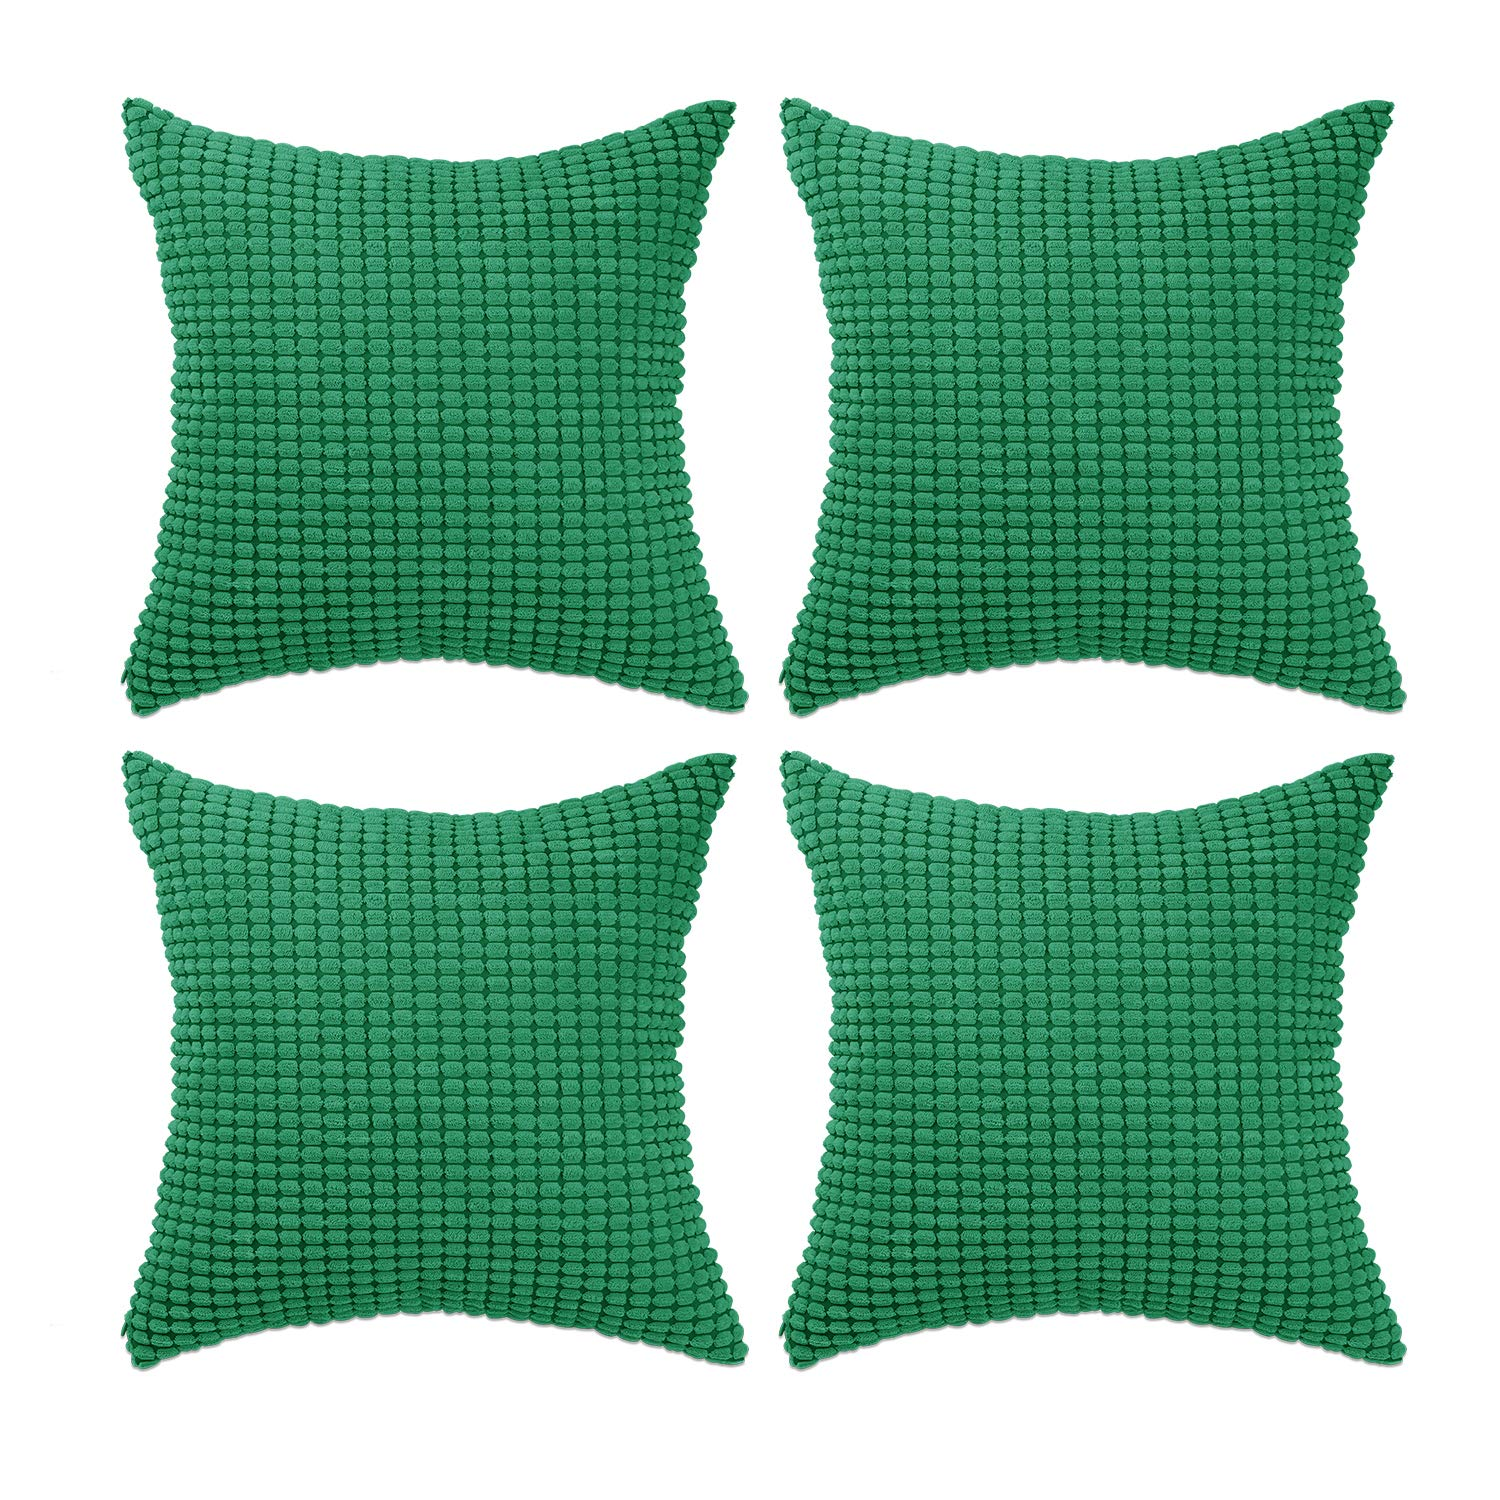 """Set of 4,Decorative Throw Pillow Covers 18"""" x 18"""" (No Insert),Solid Cozy Corduroy Corn Accent Square Pillow Case Sham,Soft Cushion Covers with Hidden Zipper for Couch/Sofa/Bedroom,Emerald Green"""